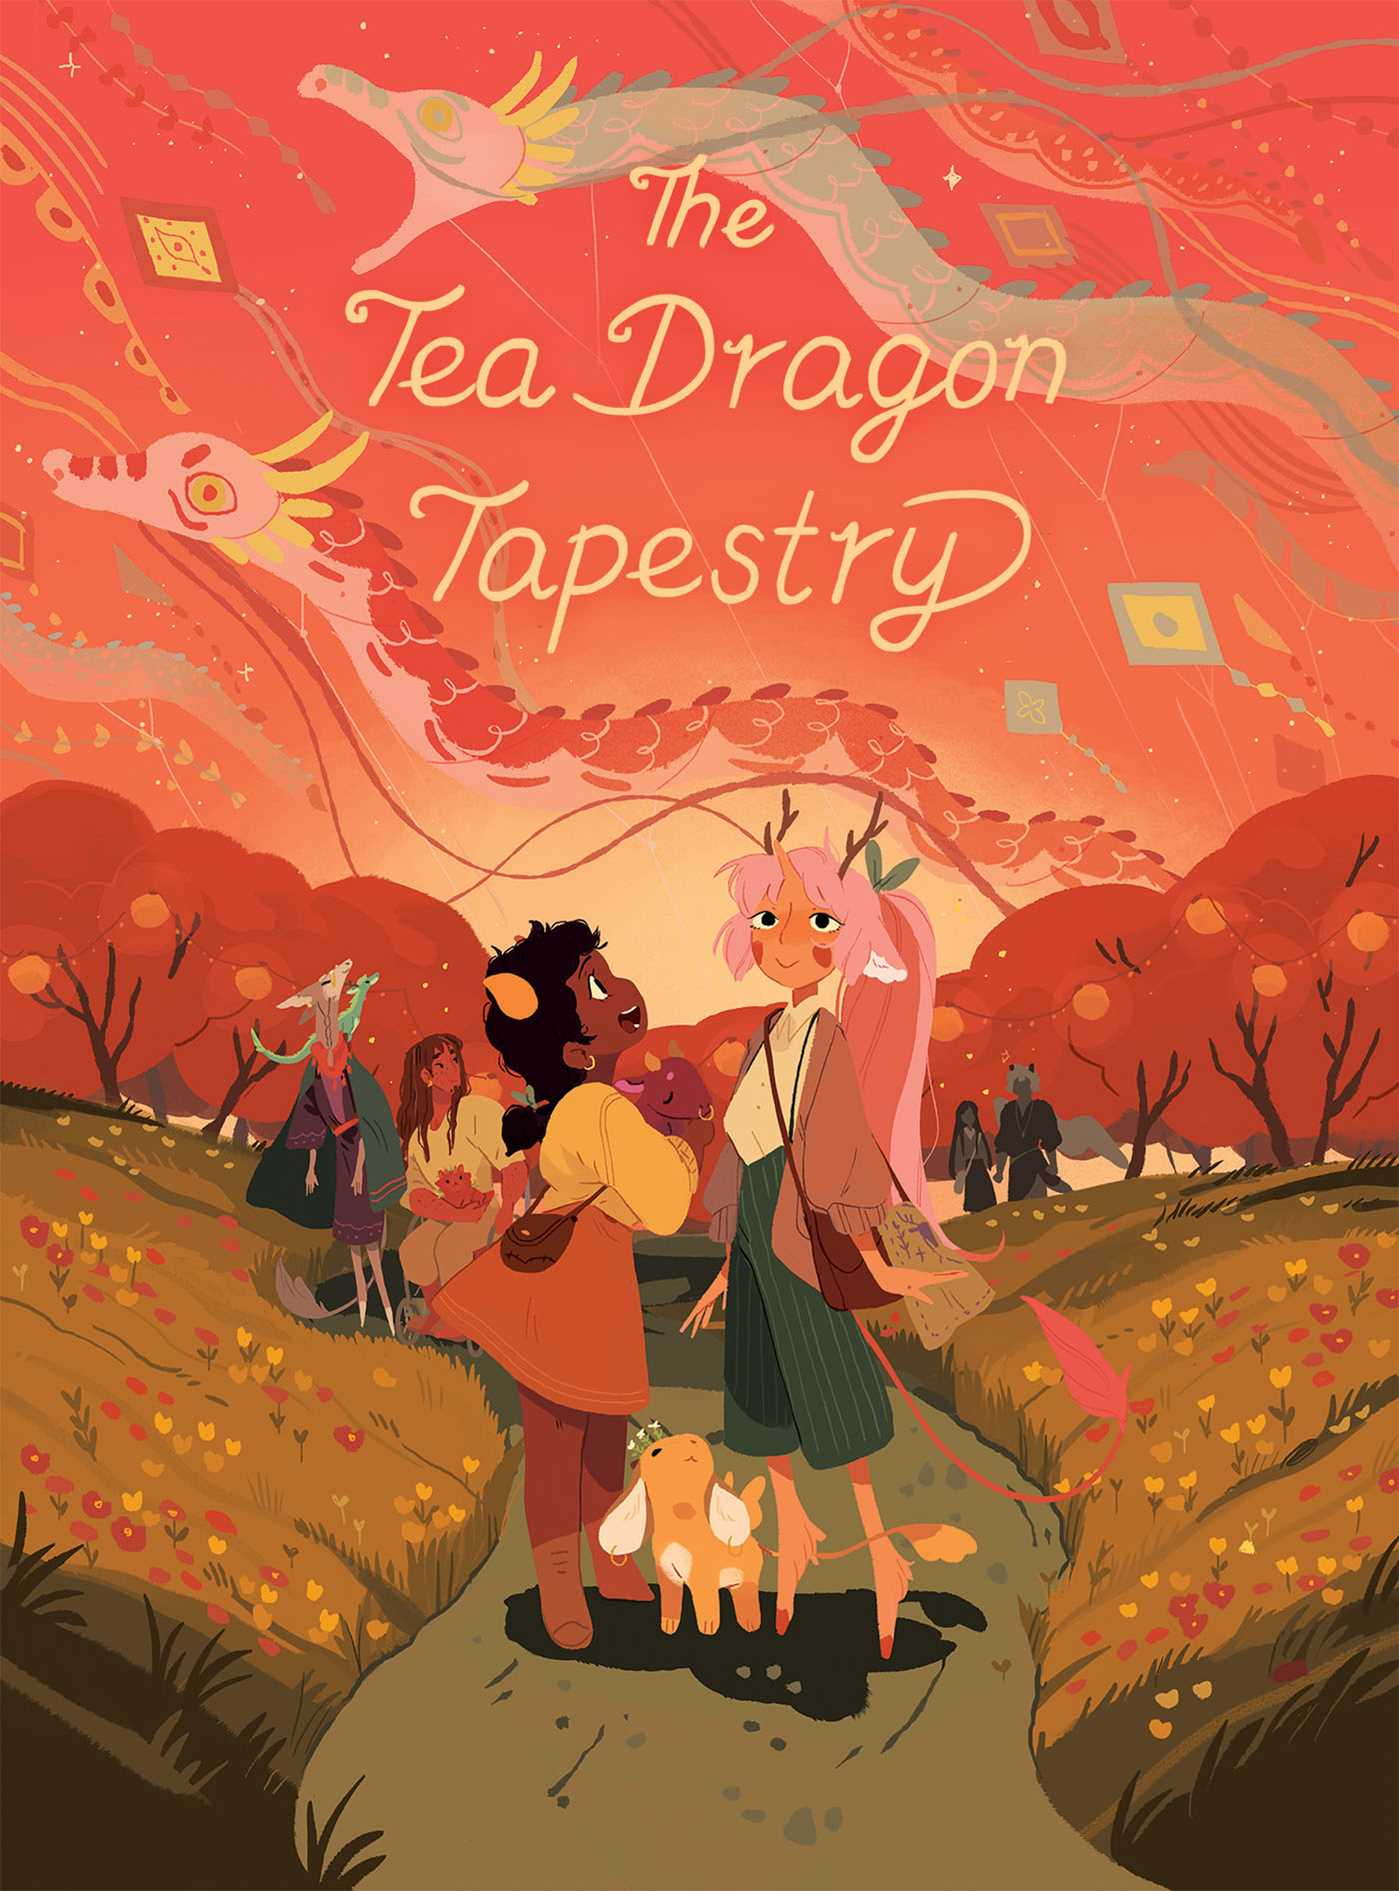 The Tea Dragon Tapestry By Katie O'Neill Release Date? 2020 Sequential Art & Graphic Novels